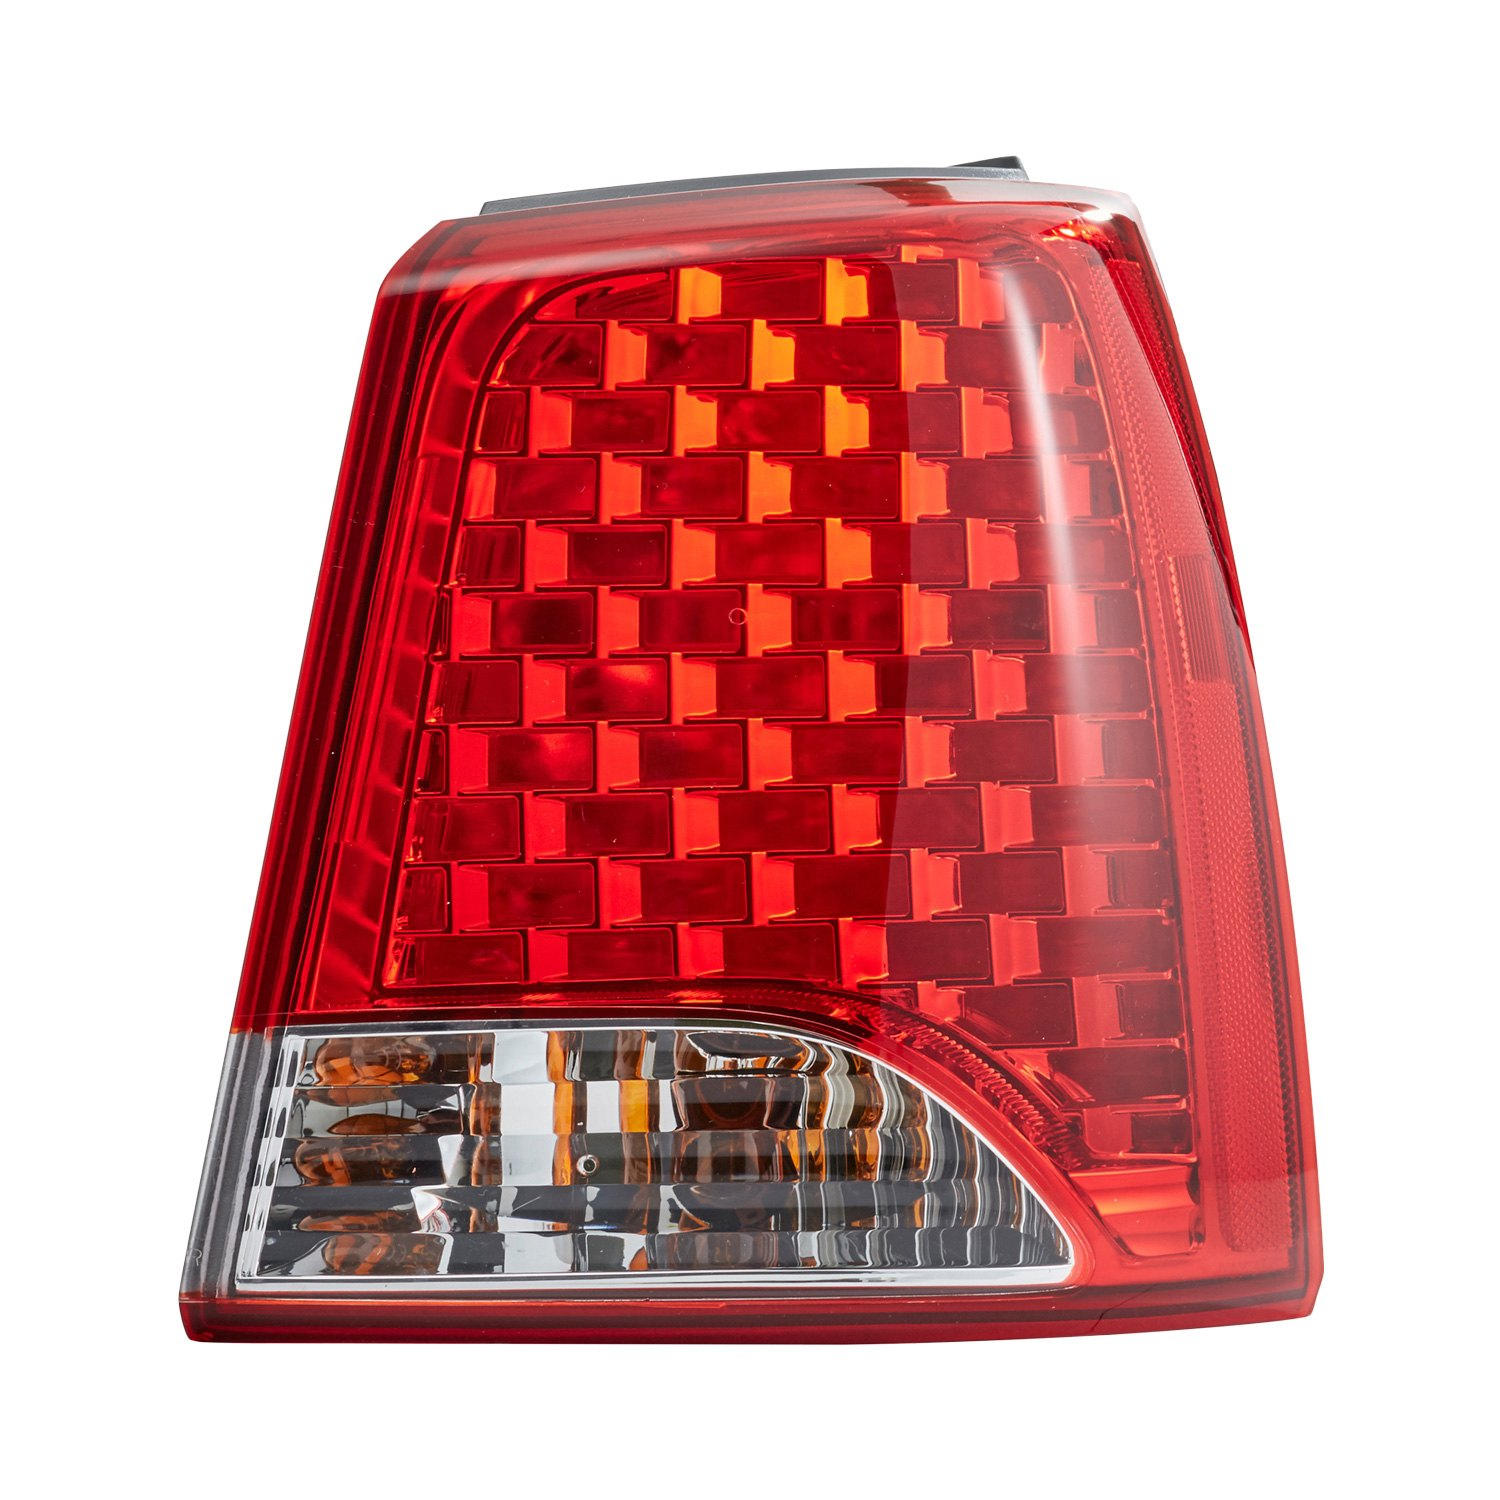 TYC 11 11705 00 1 Passenger Side Outer NSF Certified Replacement Tail Light